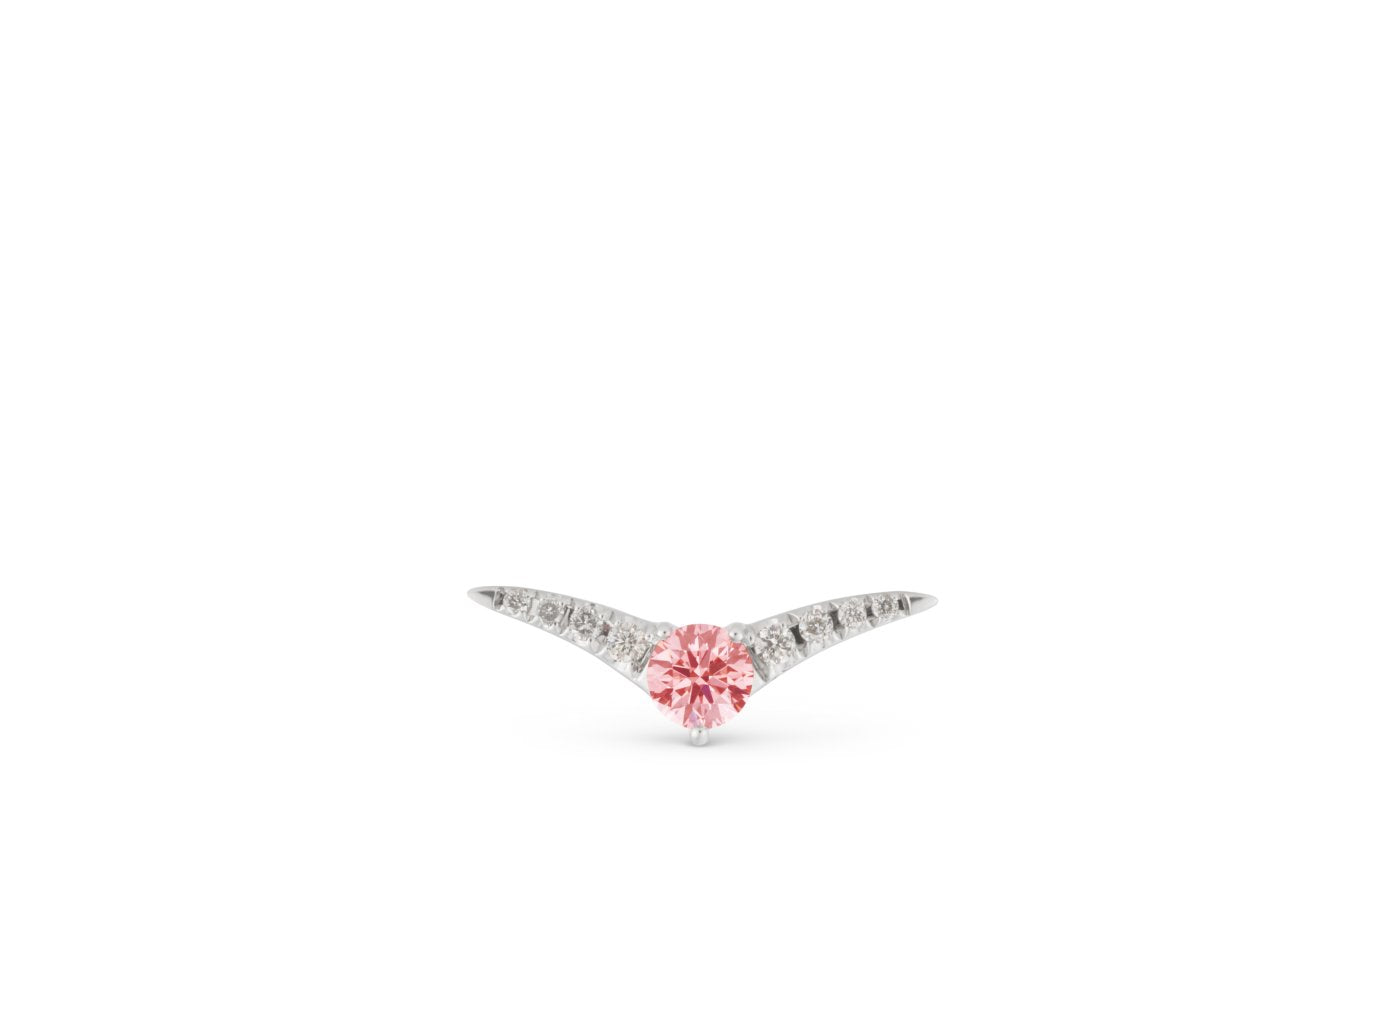 Front view of Pavé Chevron 1/4 carat earring with pink and white diamonds